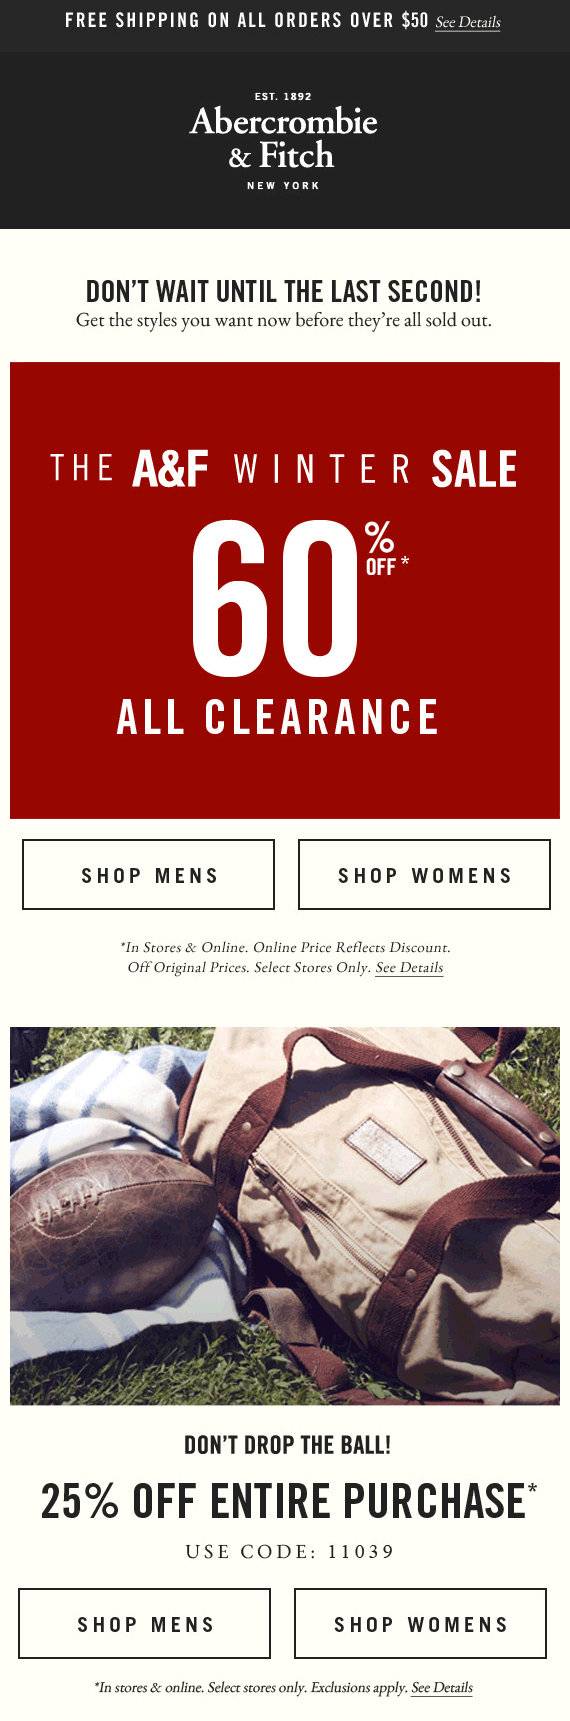 Abercrombie & Fitch Coupon May 2017 60% off clearance + 25% off everything at Abercrombie & Fitch, or online via promo code 11039